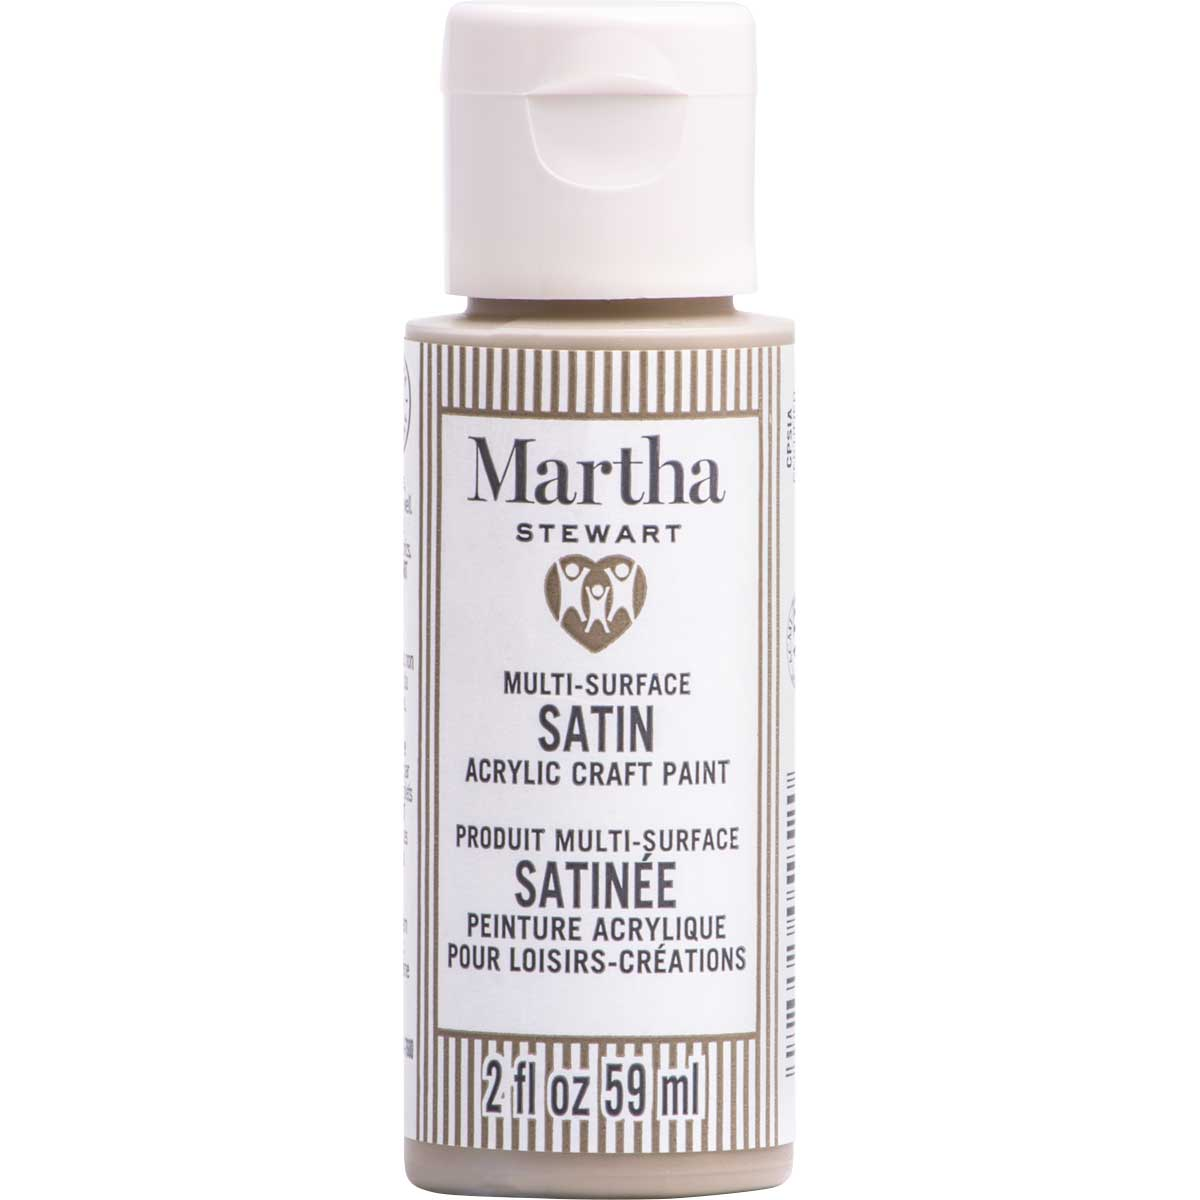 Martha Stewart ® Multi-Surface Satin Acrylic Craft Paint CPSIA - Oat, 2 oz. - 5952